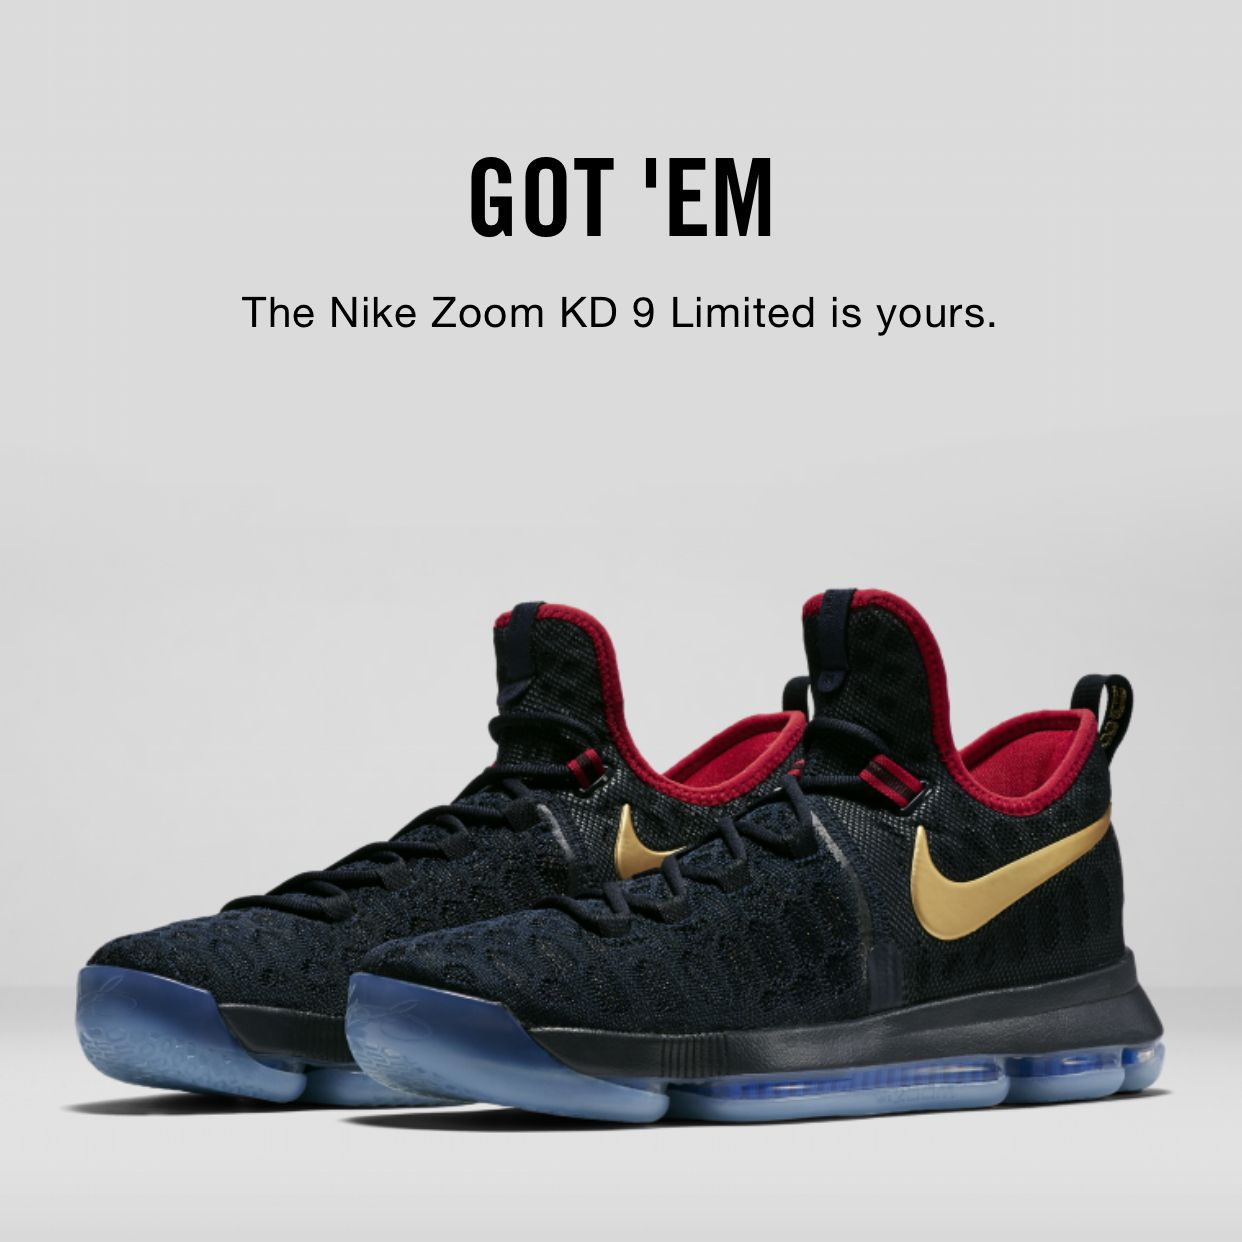 Check out my new pickup from Nike SNKRS: nike.com/snkrs/thread/37d2094847311f59417d4bfcee32a4cb826a22b7